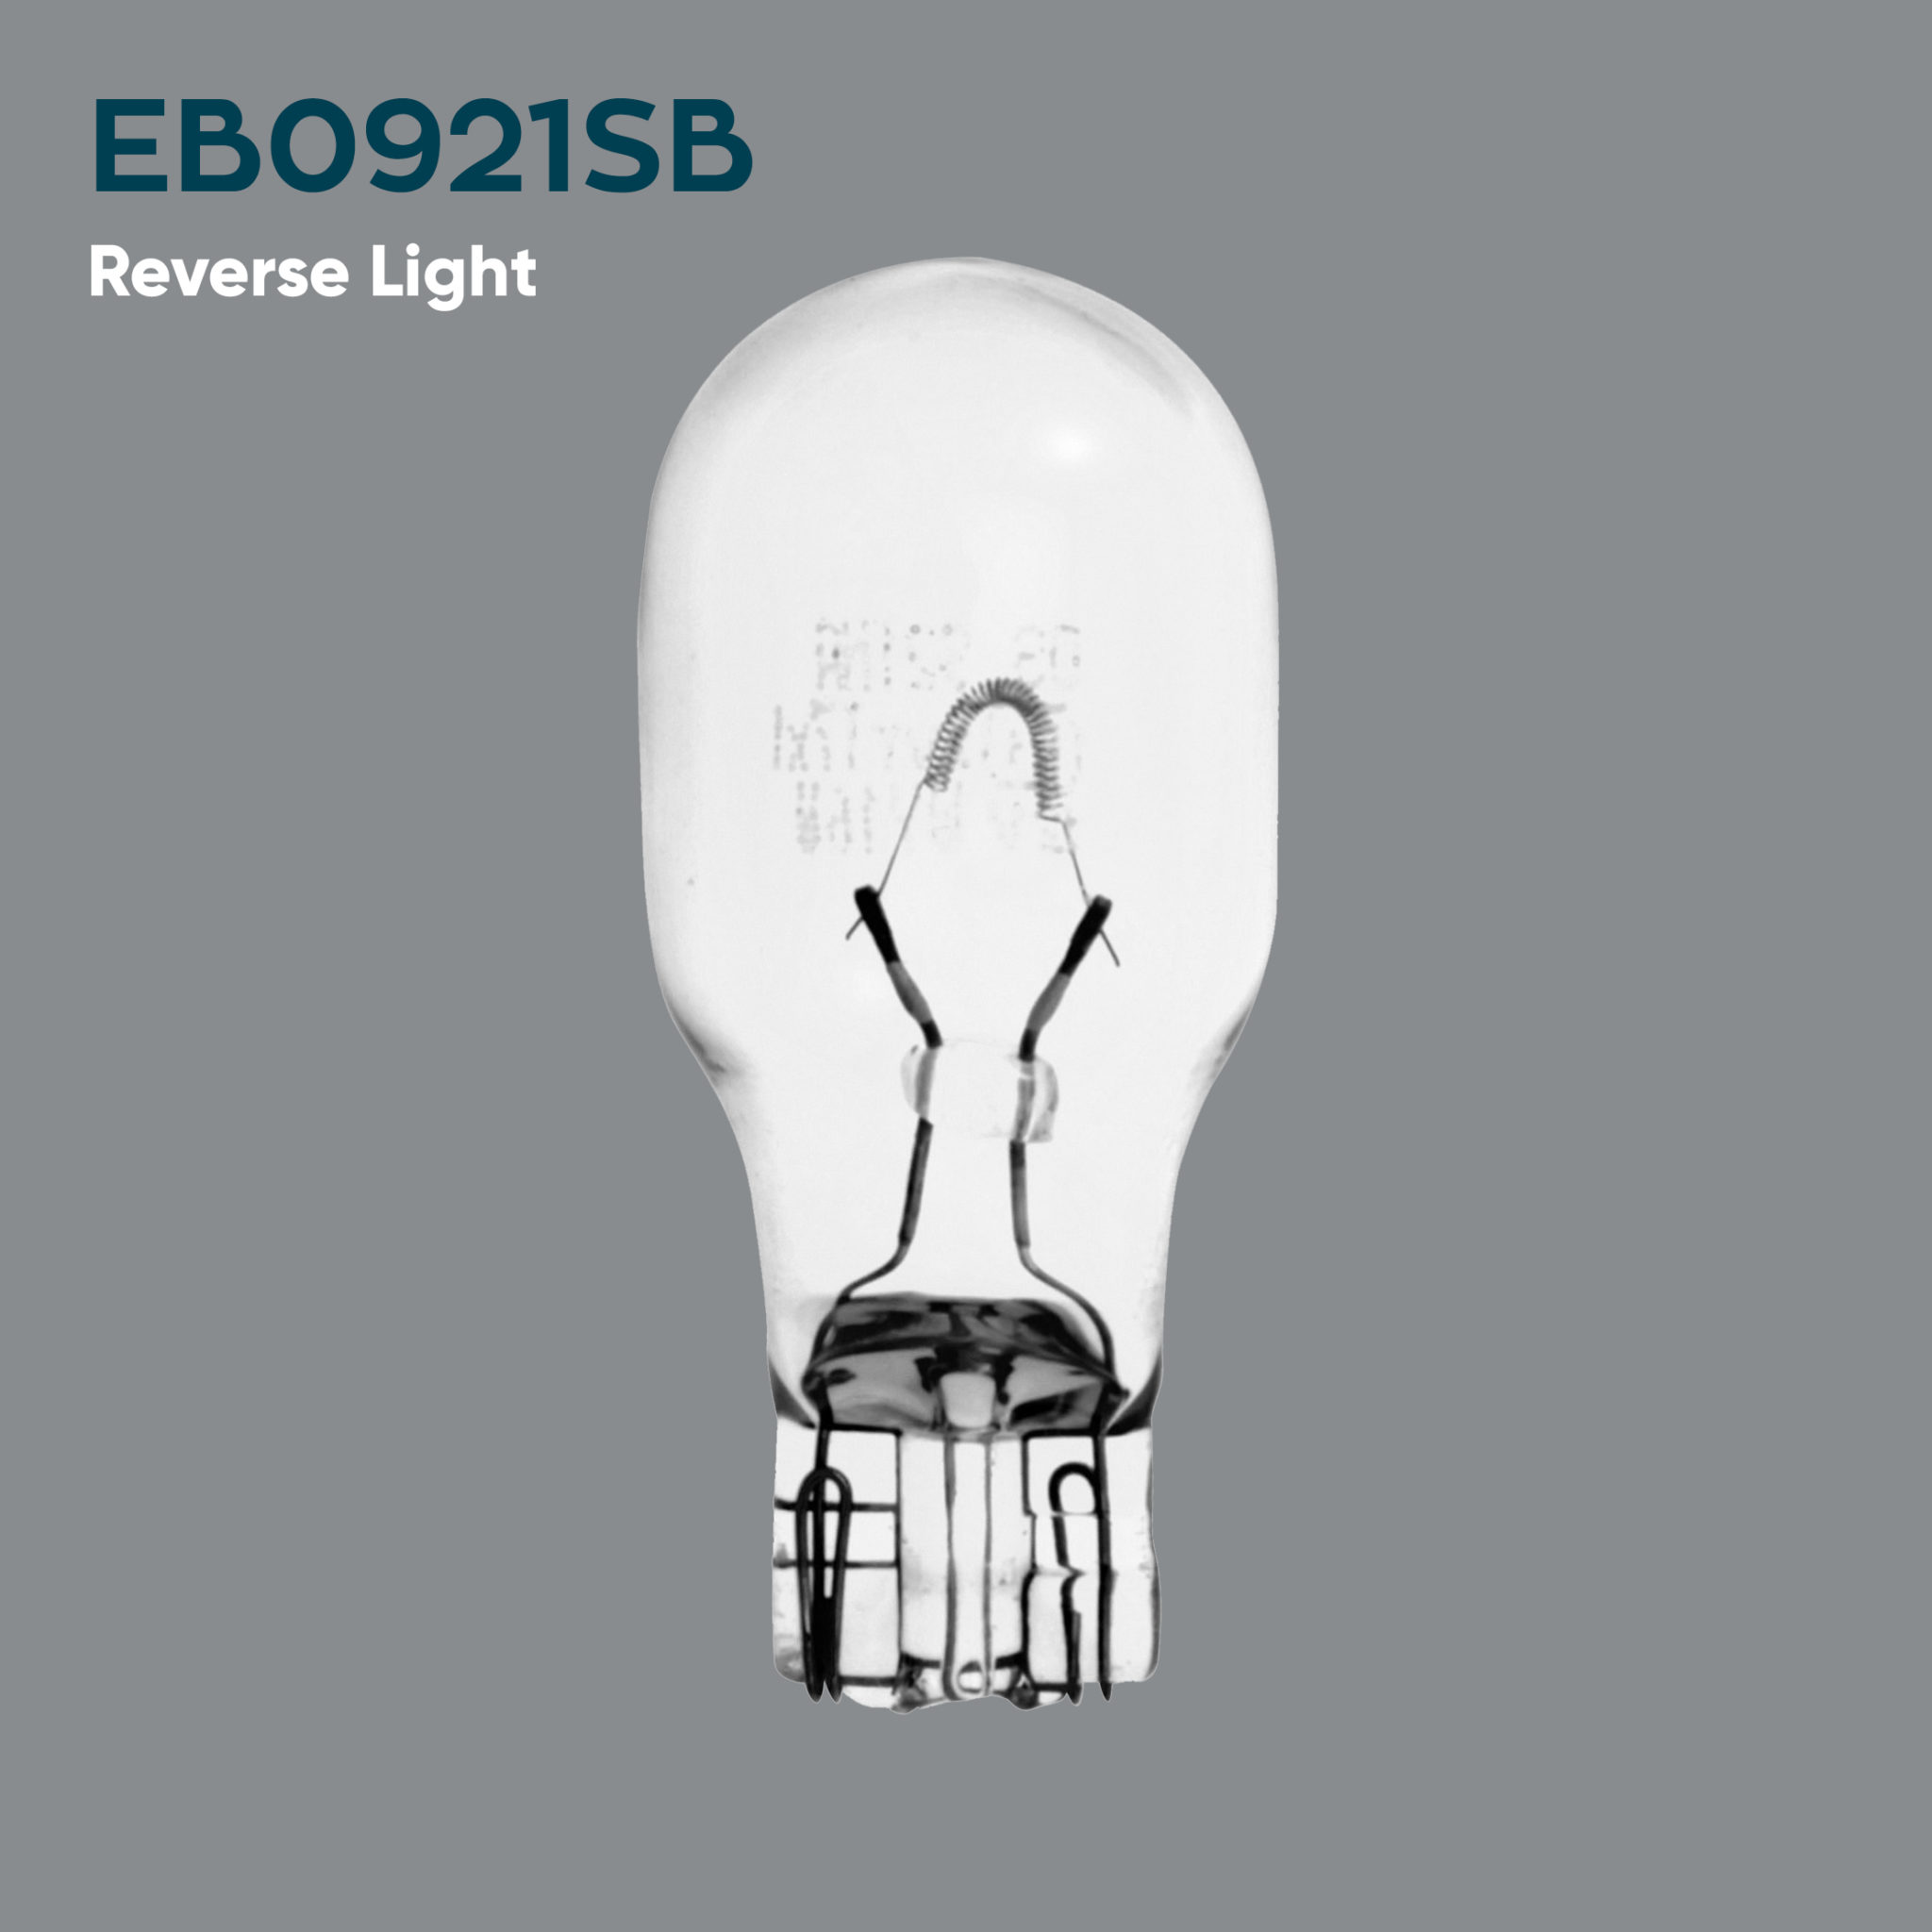 Ford Focus EcoBoost Reverse Light Bulb